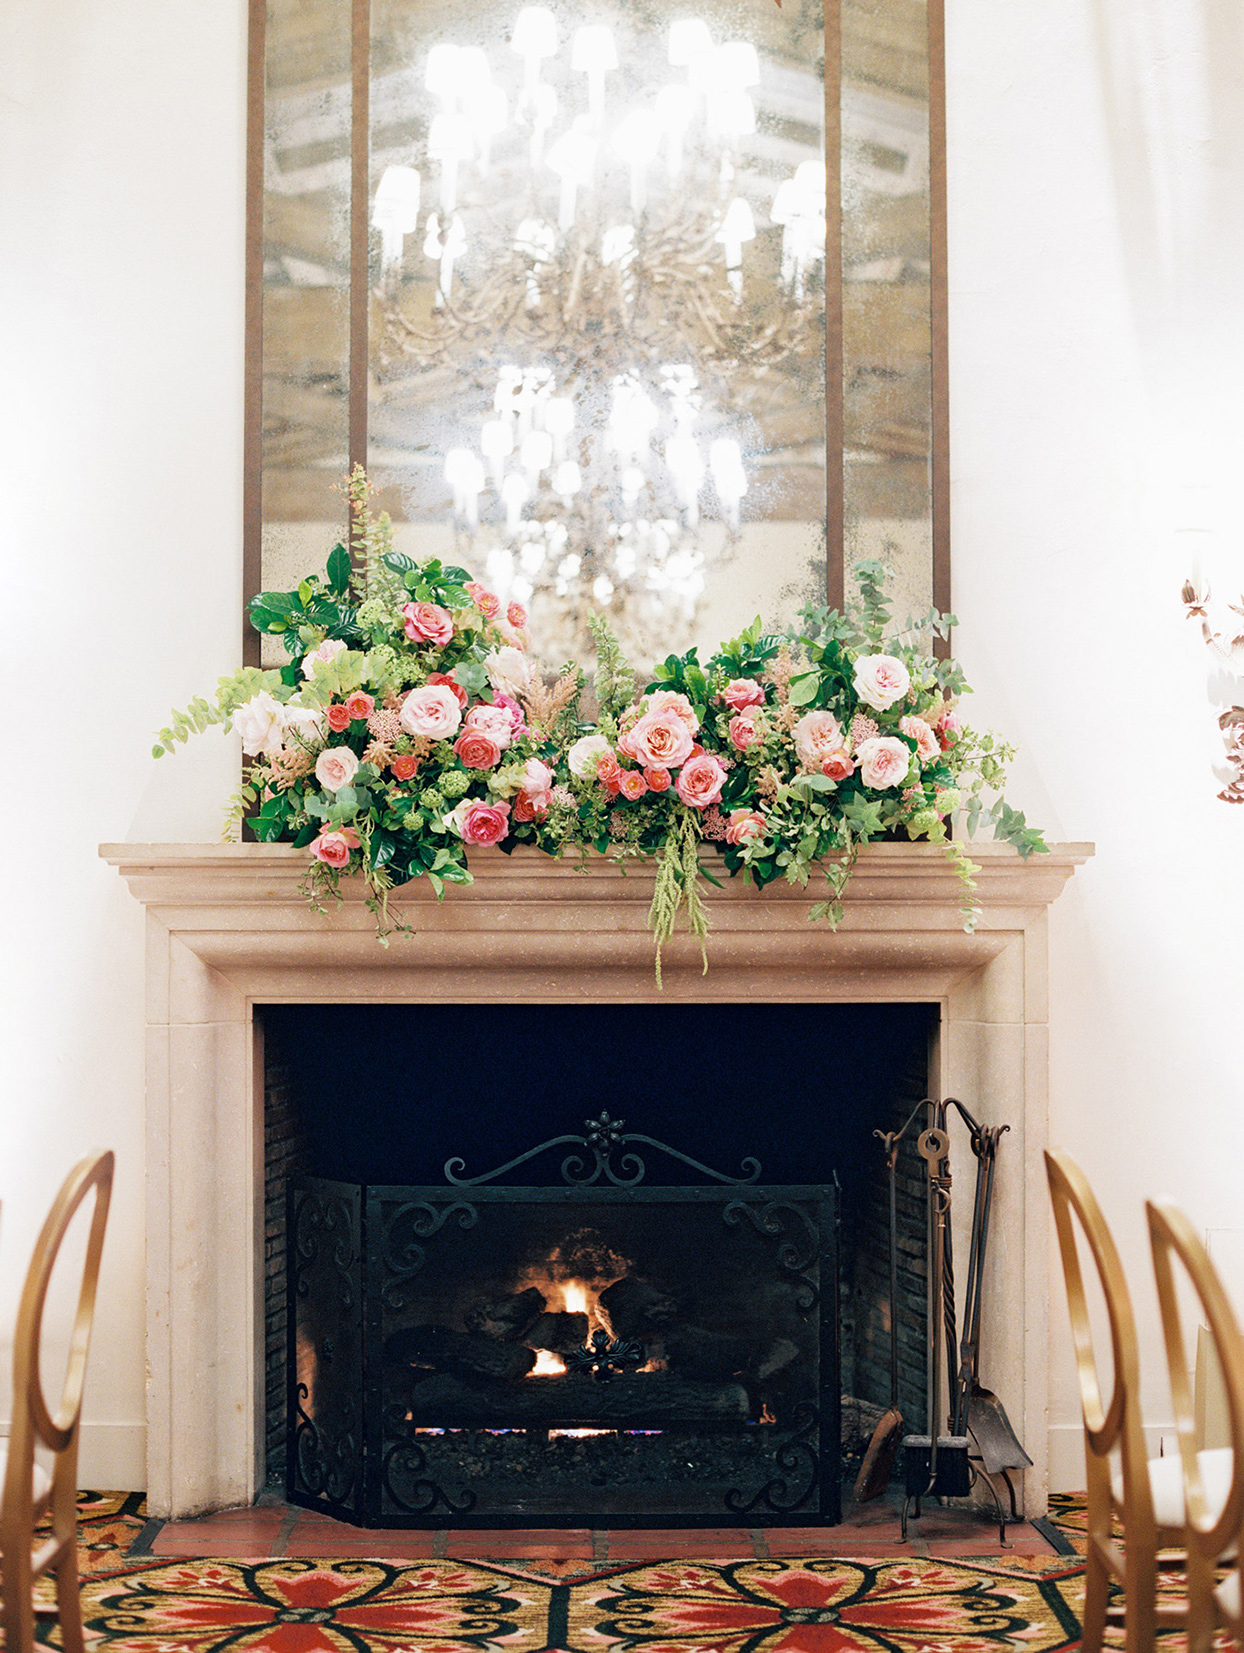 wedding reception fireplace at venue with florals on mantel